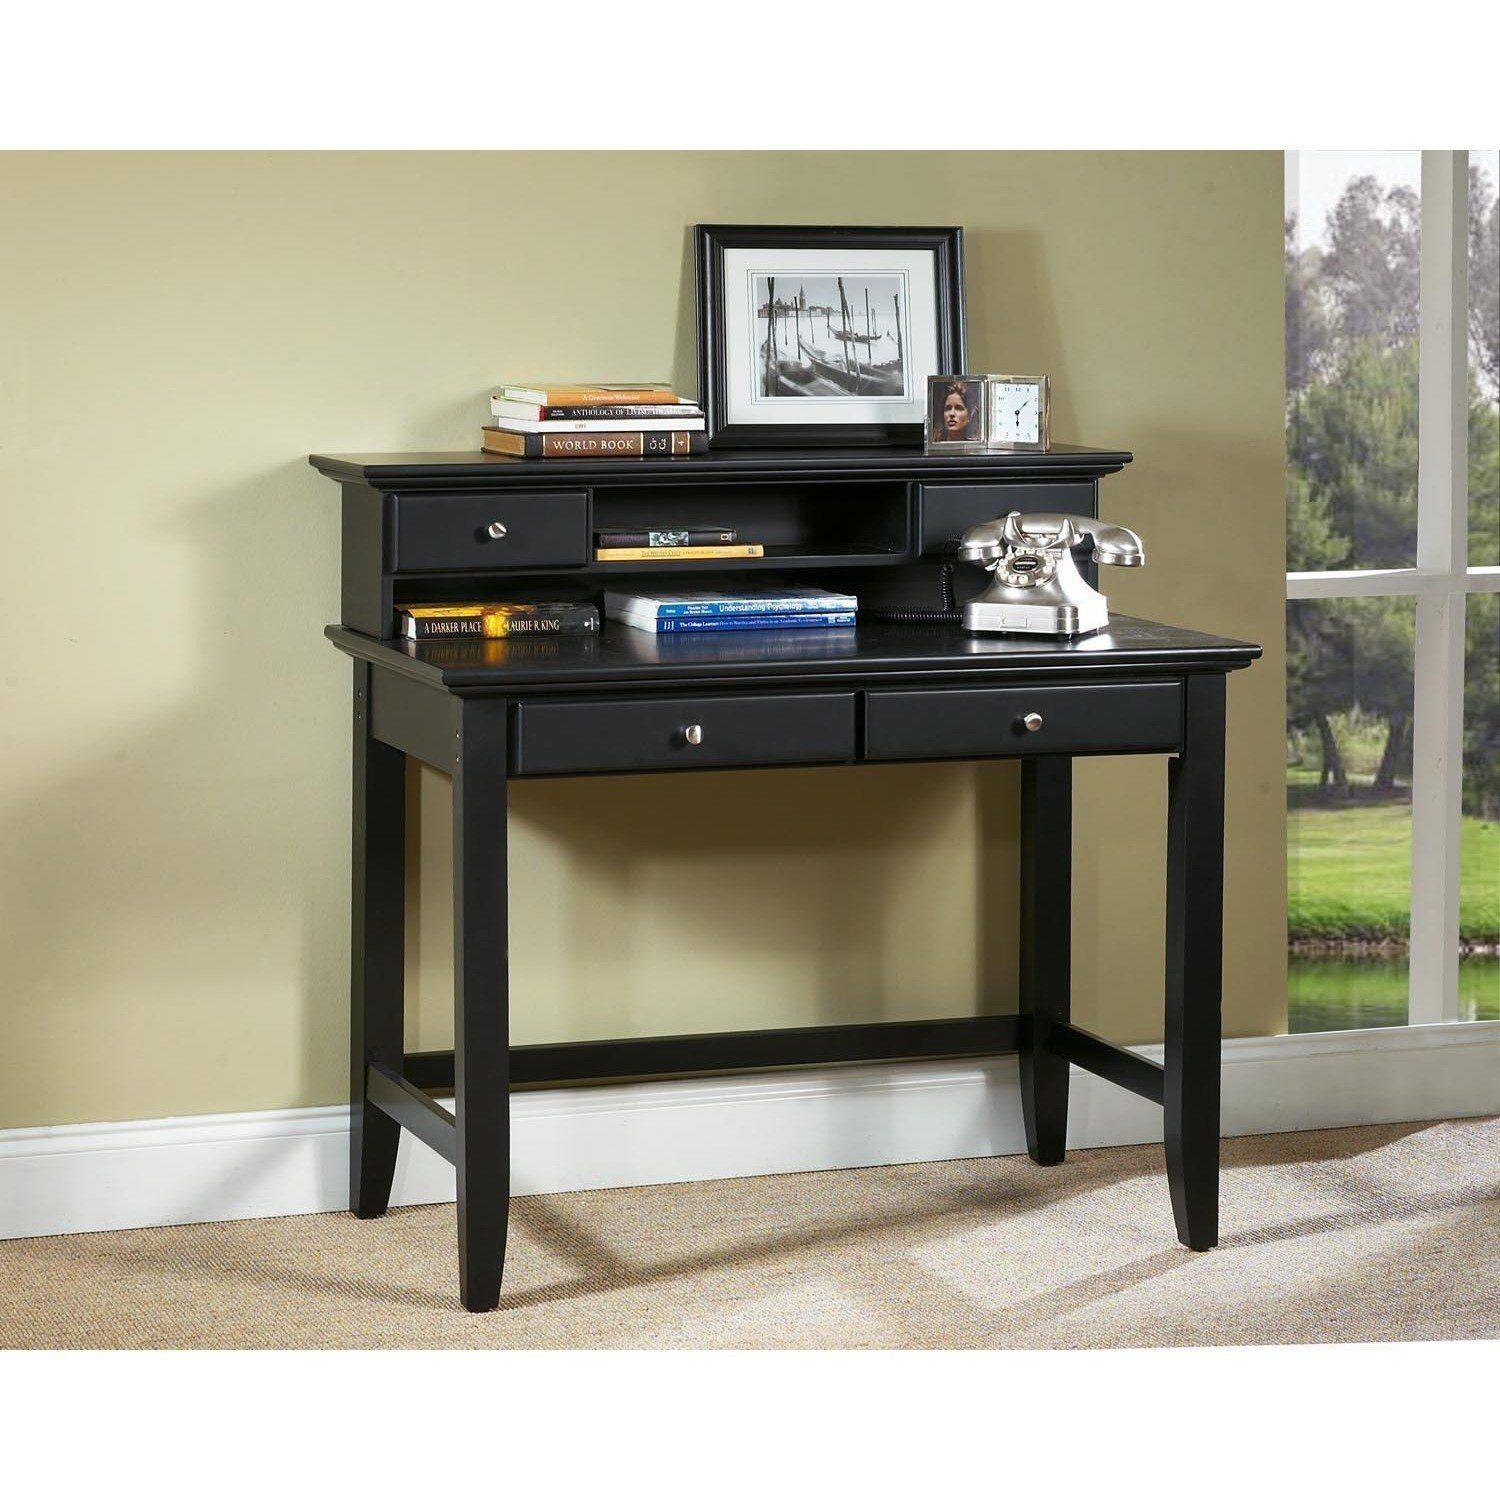 Gracewood Hollow Antoine Black Student Desk And Hutch